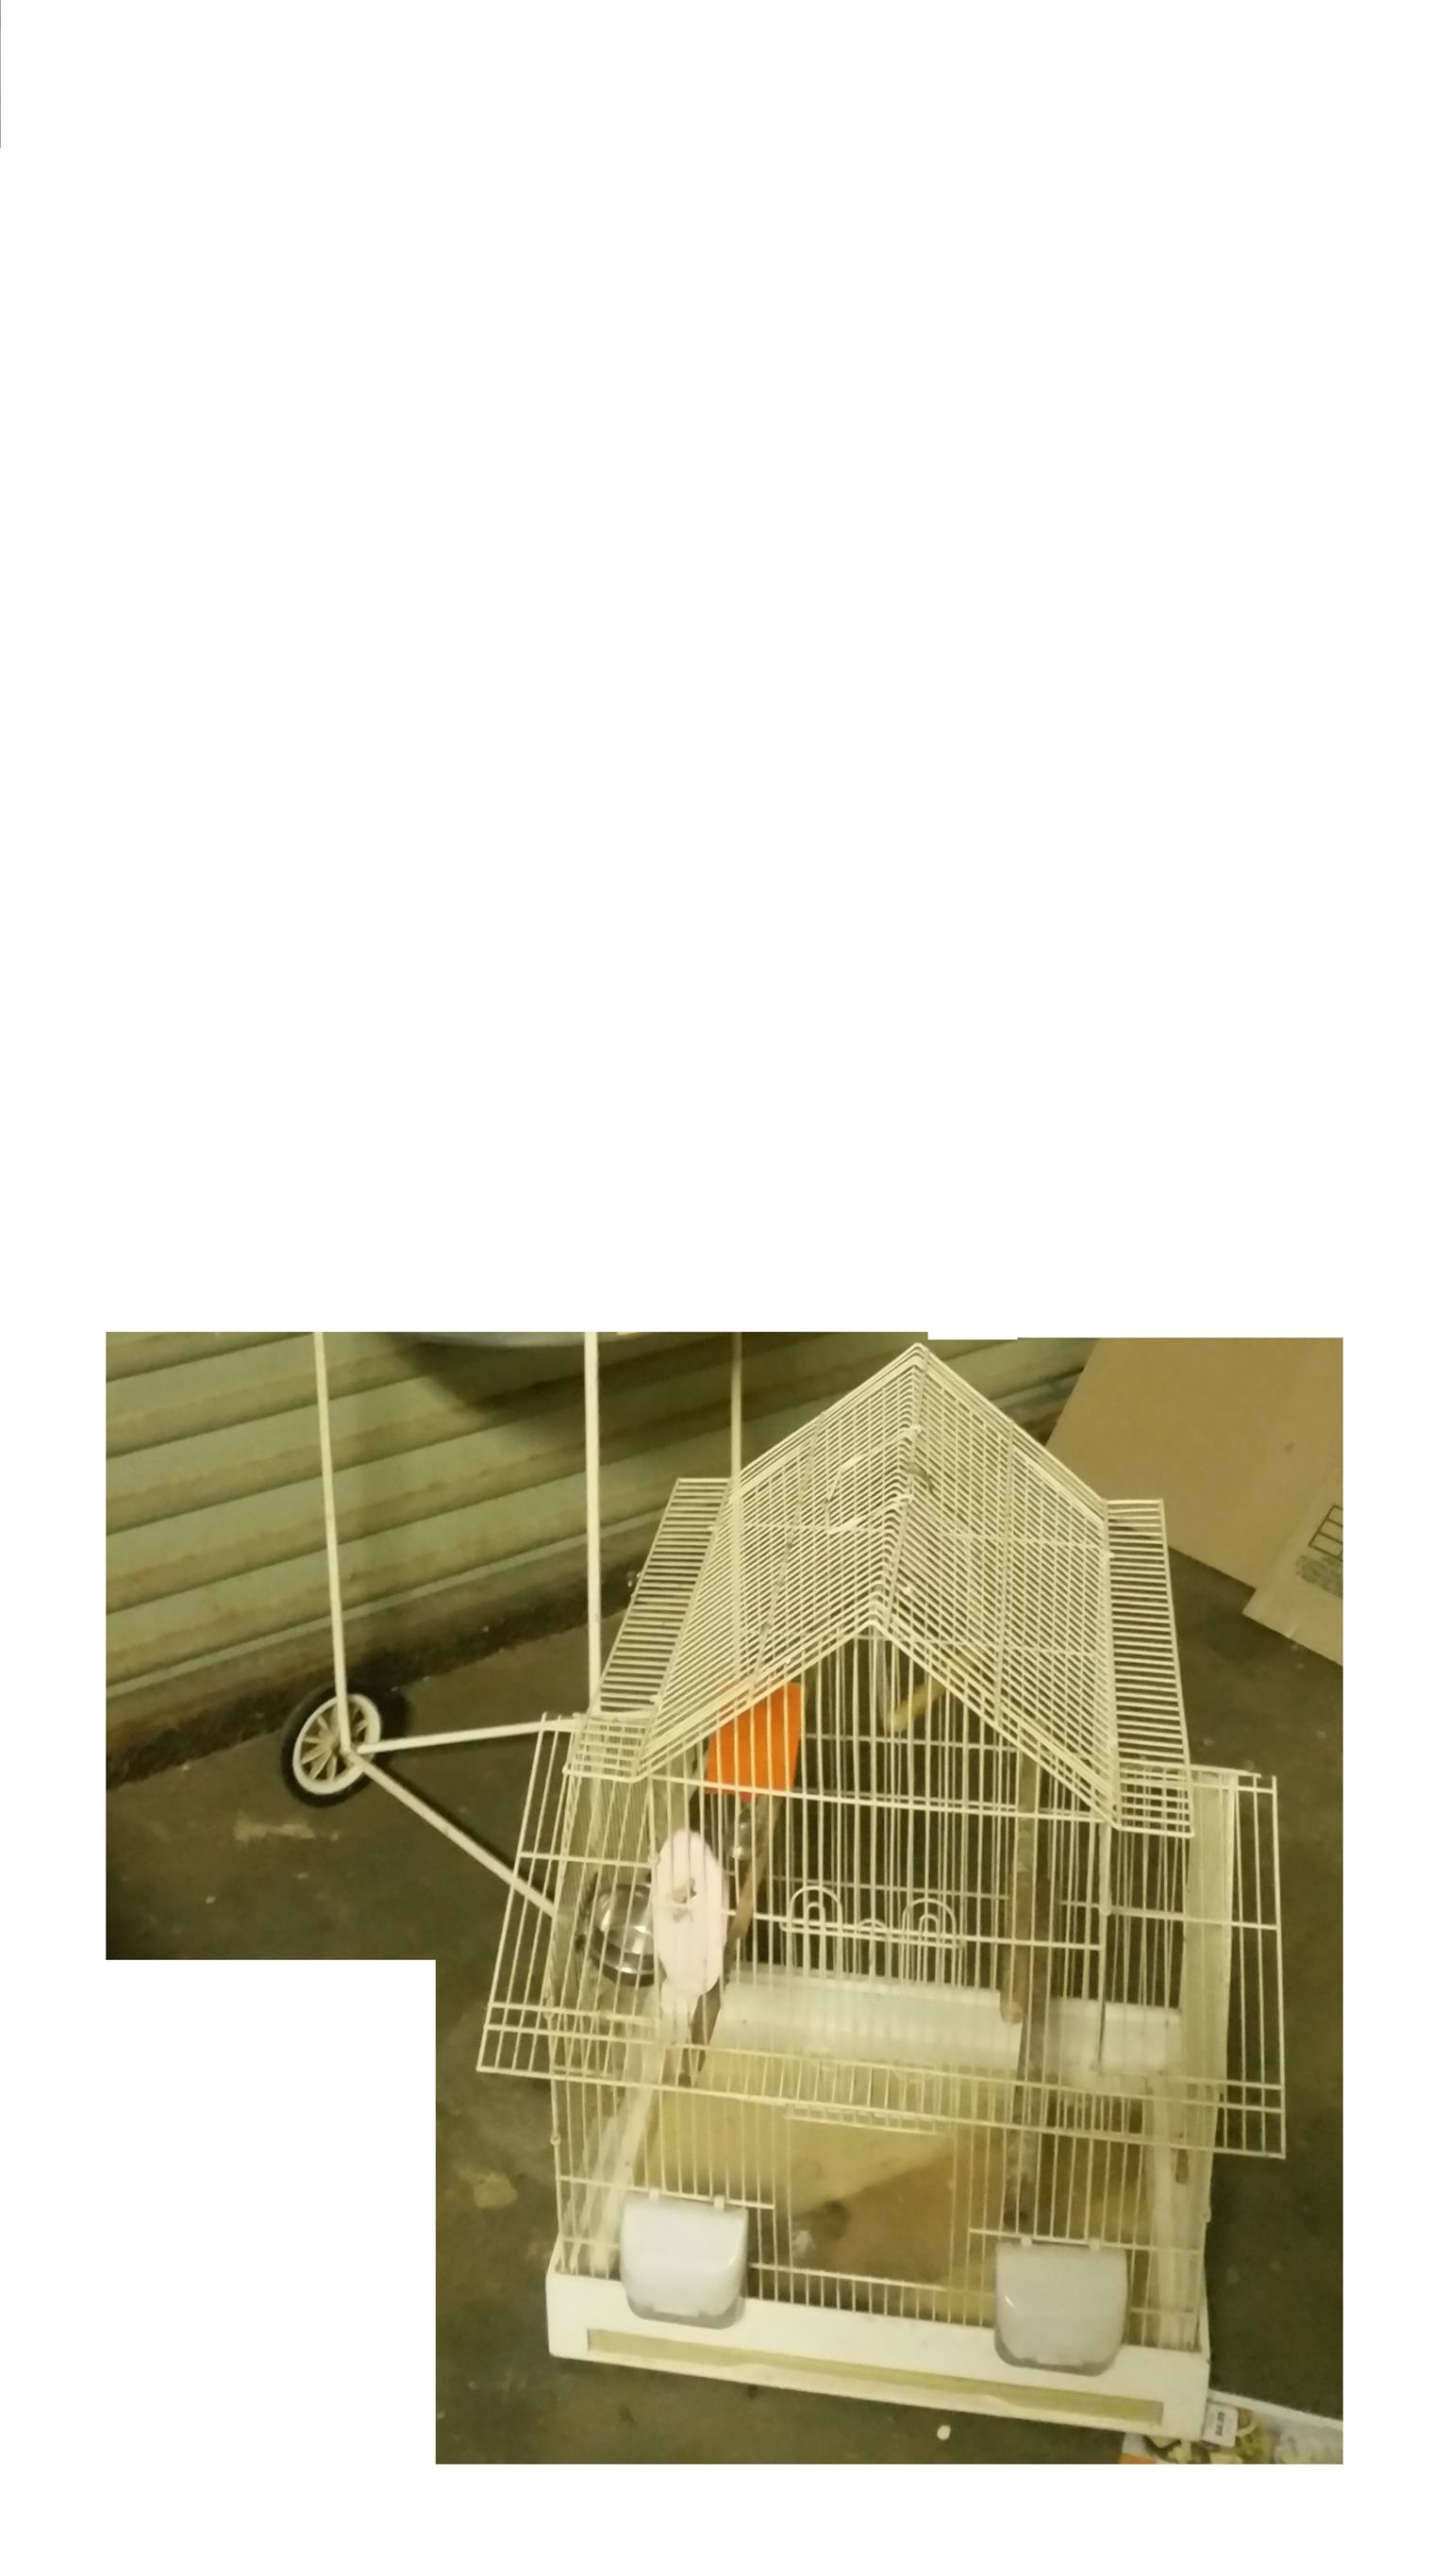 1 Lovely size bird cage